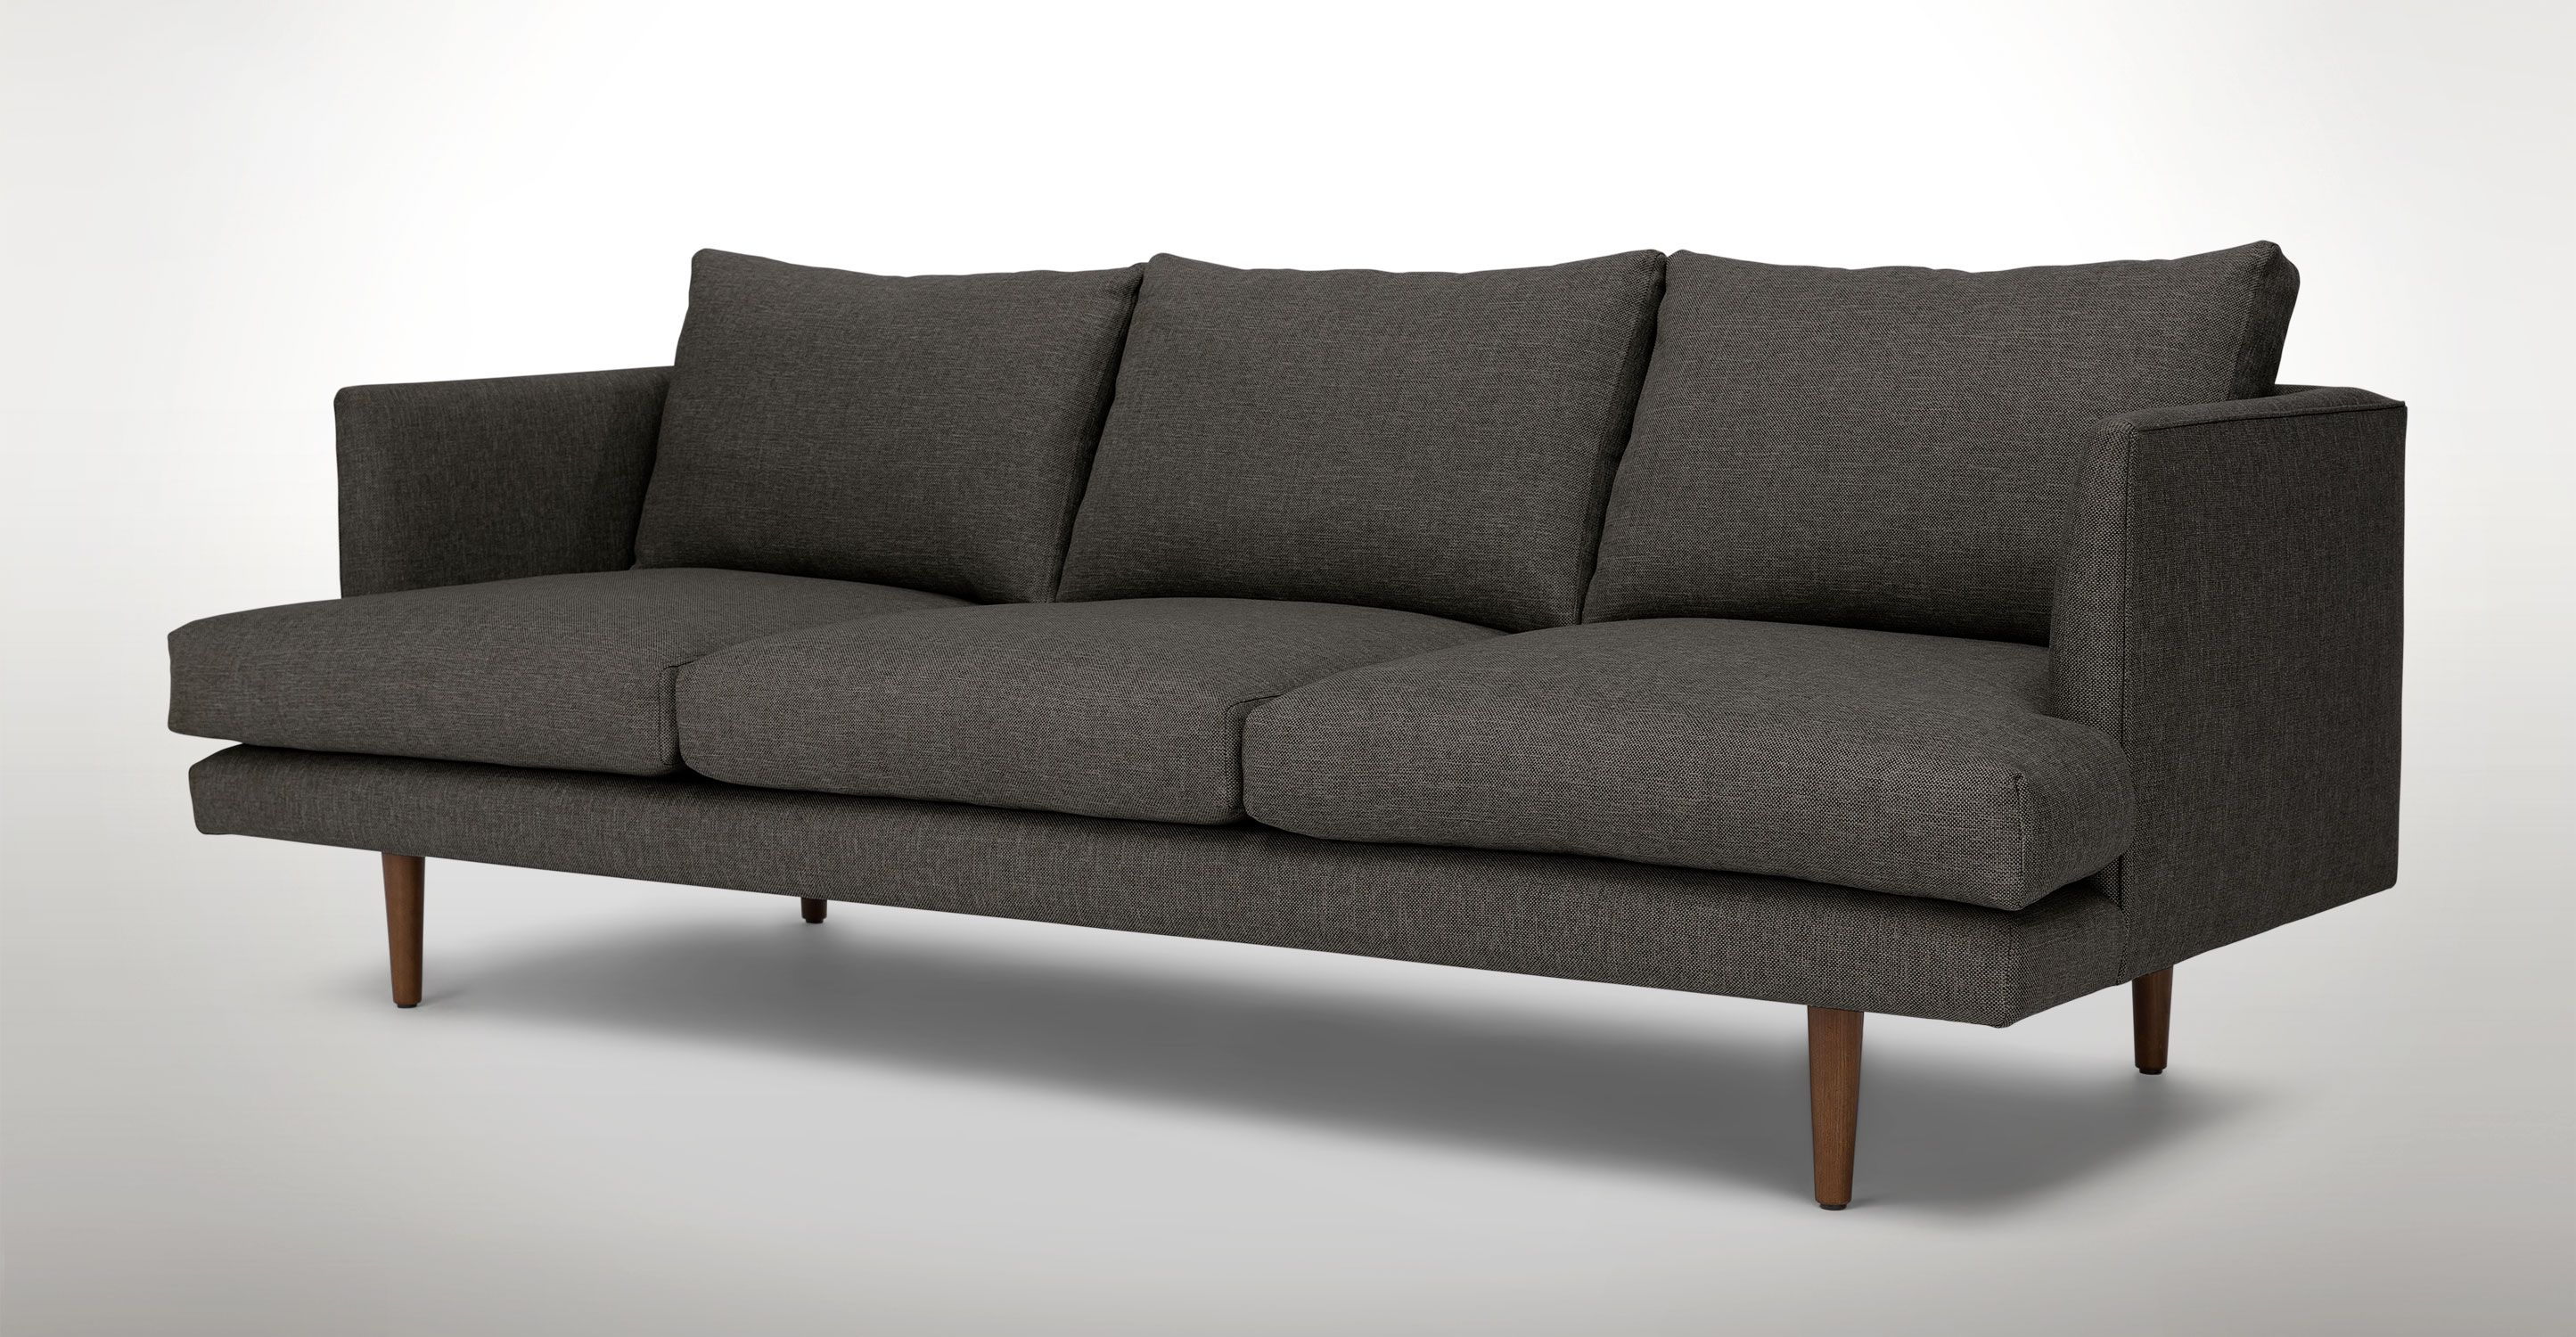 Dark Gray Sofa 3 Seater Solid Wood Legs